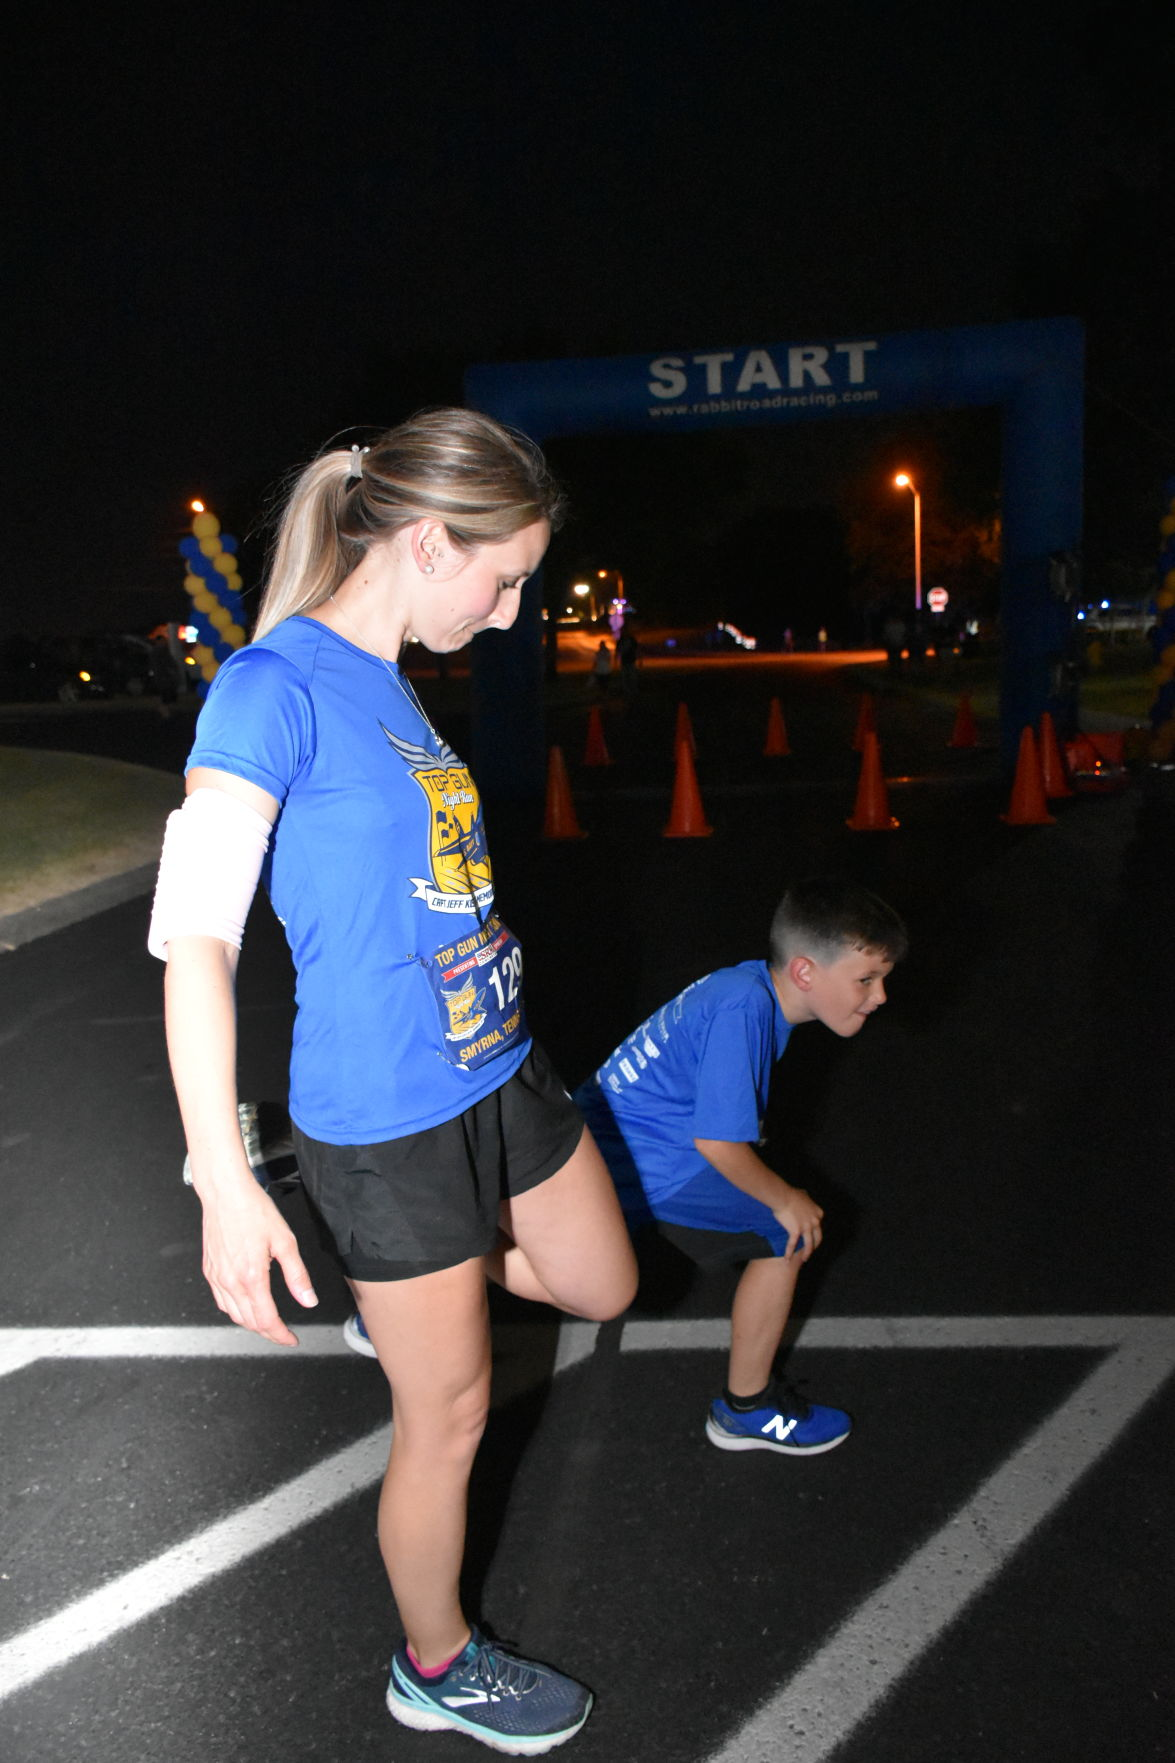 Jennifer Donaldson and her son, Brody, stretch before the Top Gun Night Run. The 6K was their second race together.